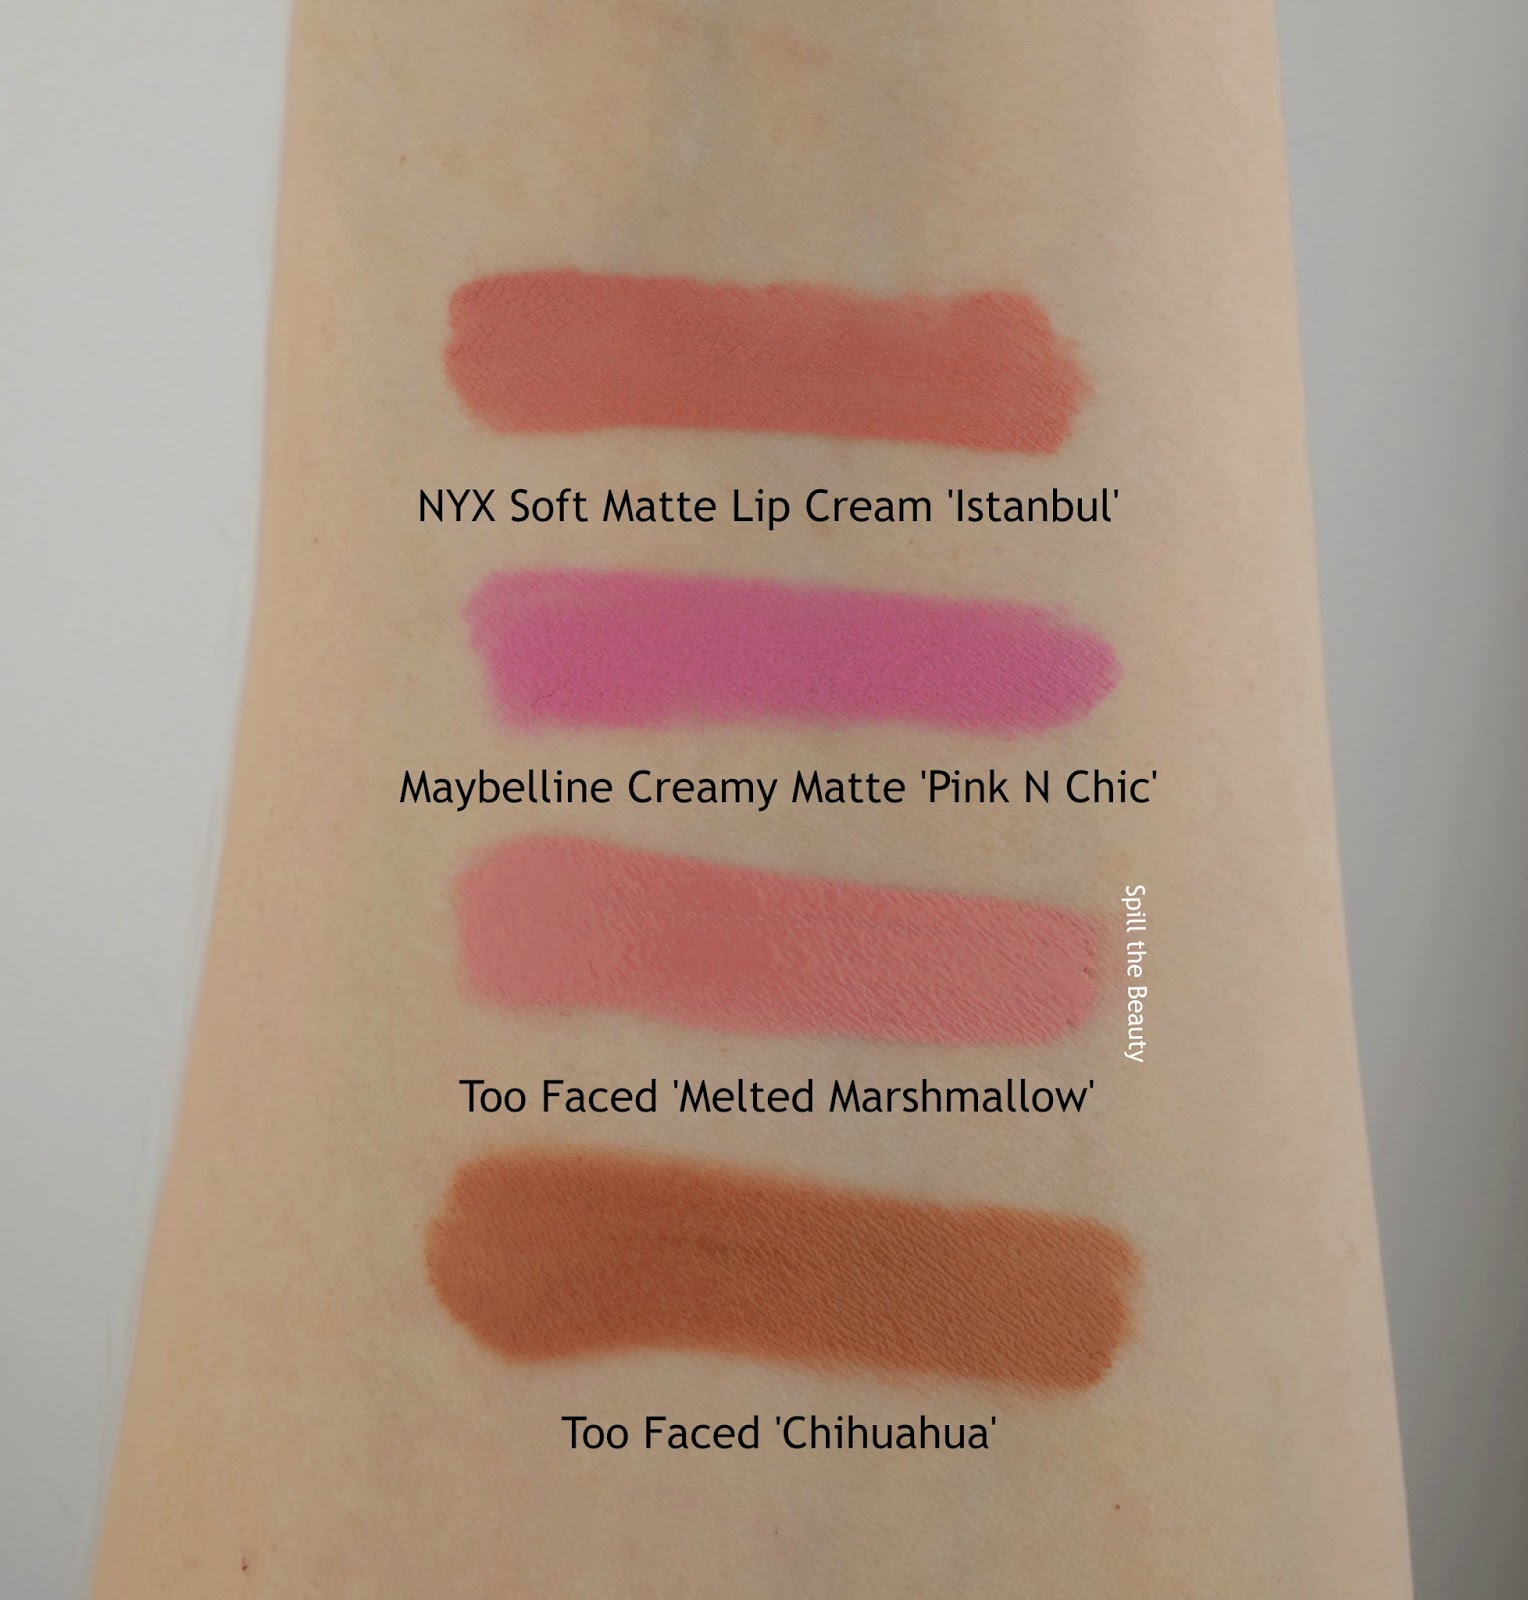 Too Faced Liquified Long Wear Lipstick Melted Marshmallow review swatches comparison drugstore dupe nyx maybelline